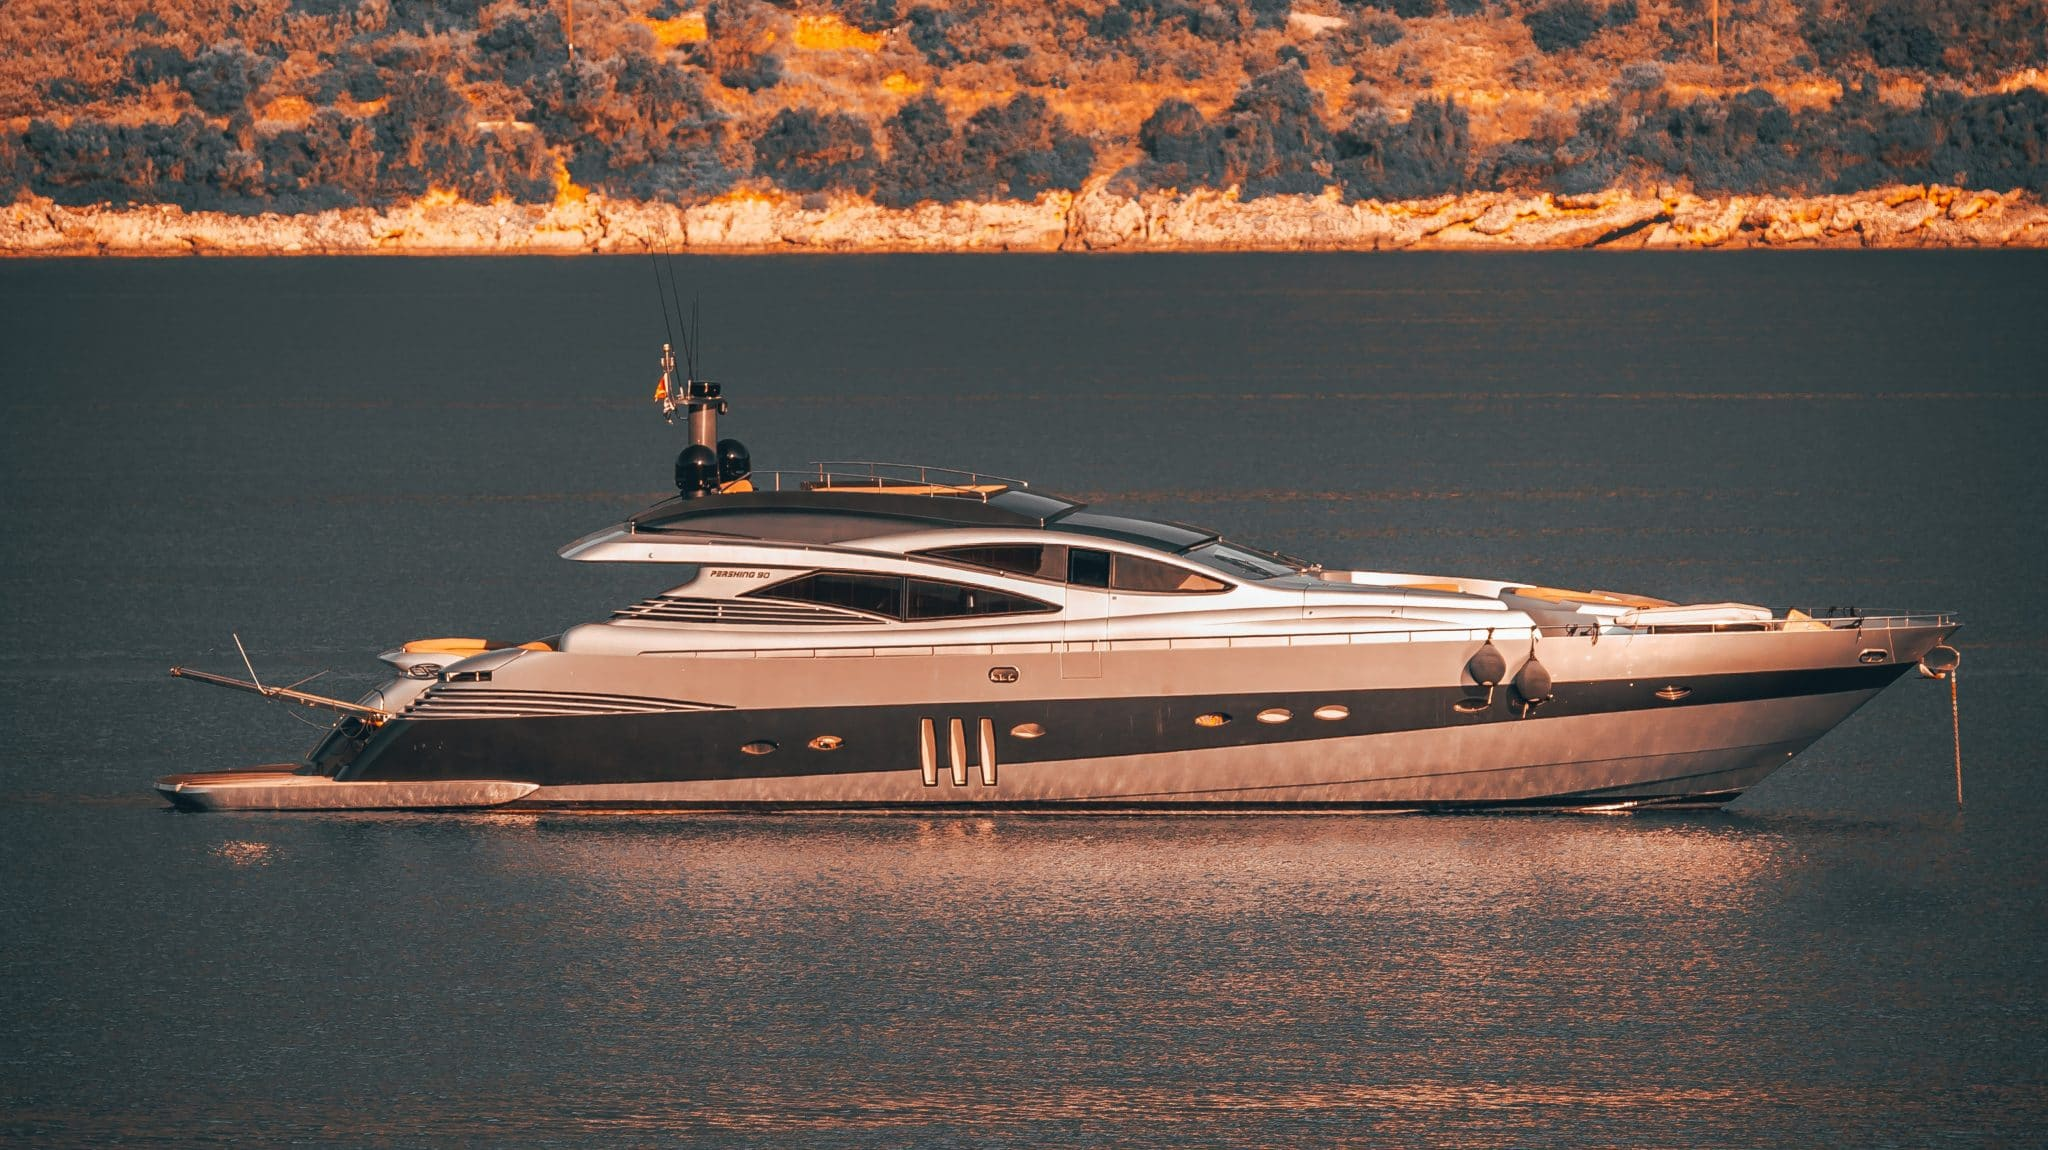 yacht on a body of water